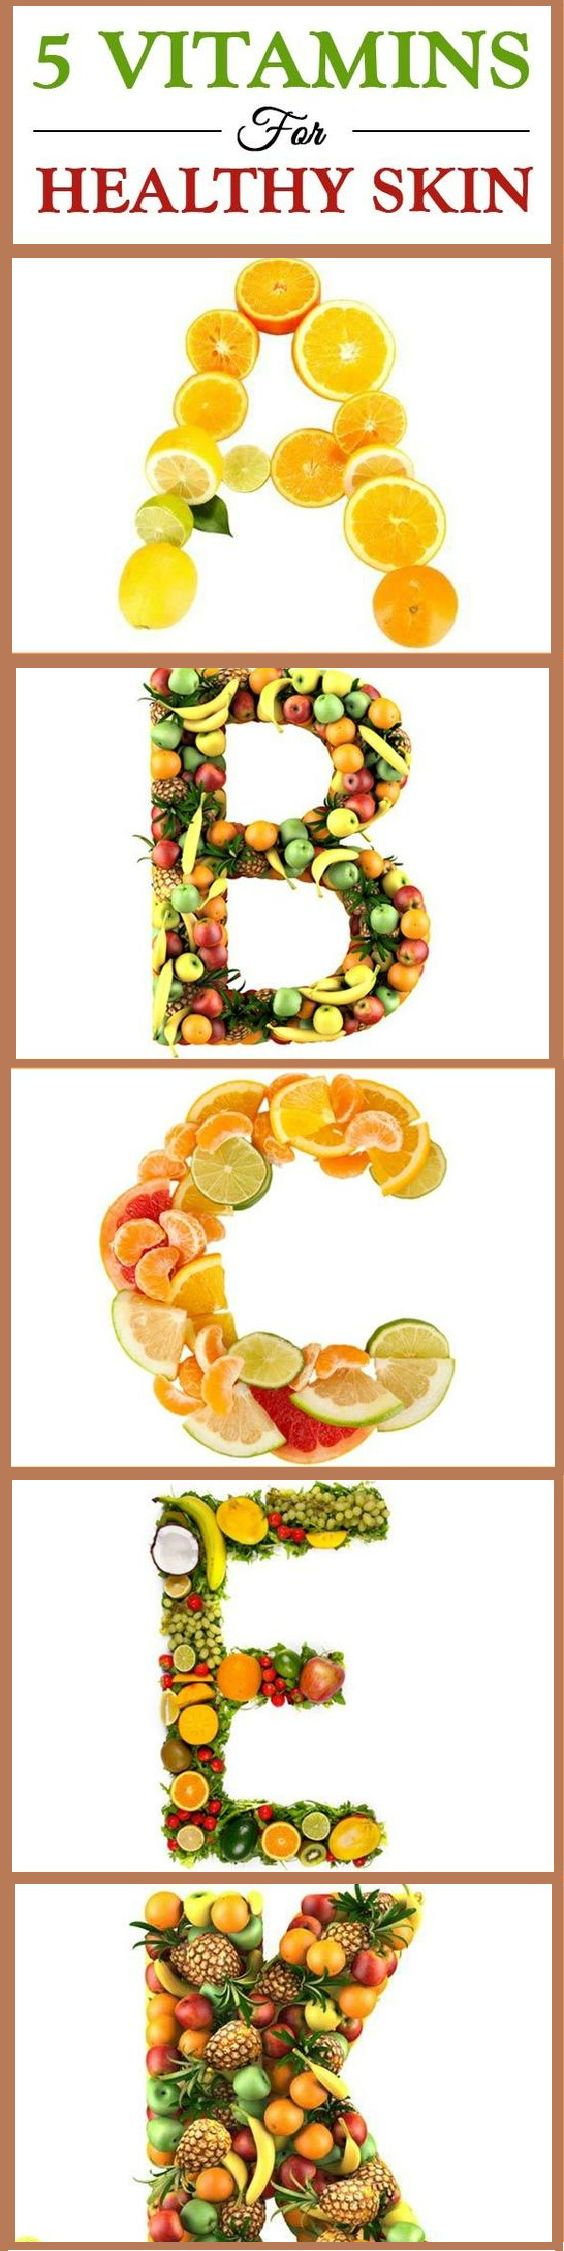 Five Best Essential Vitamins For Healthy Skin Vitamins are necessary for your health and at the risk of repeating it your health become so beautiful.